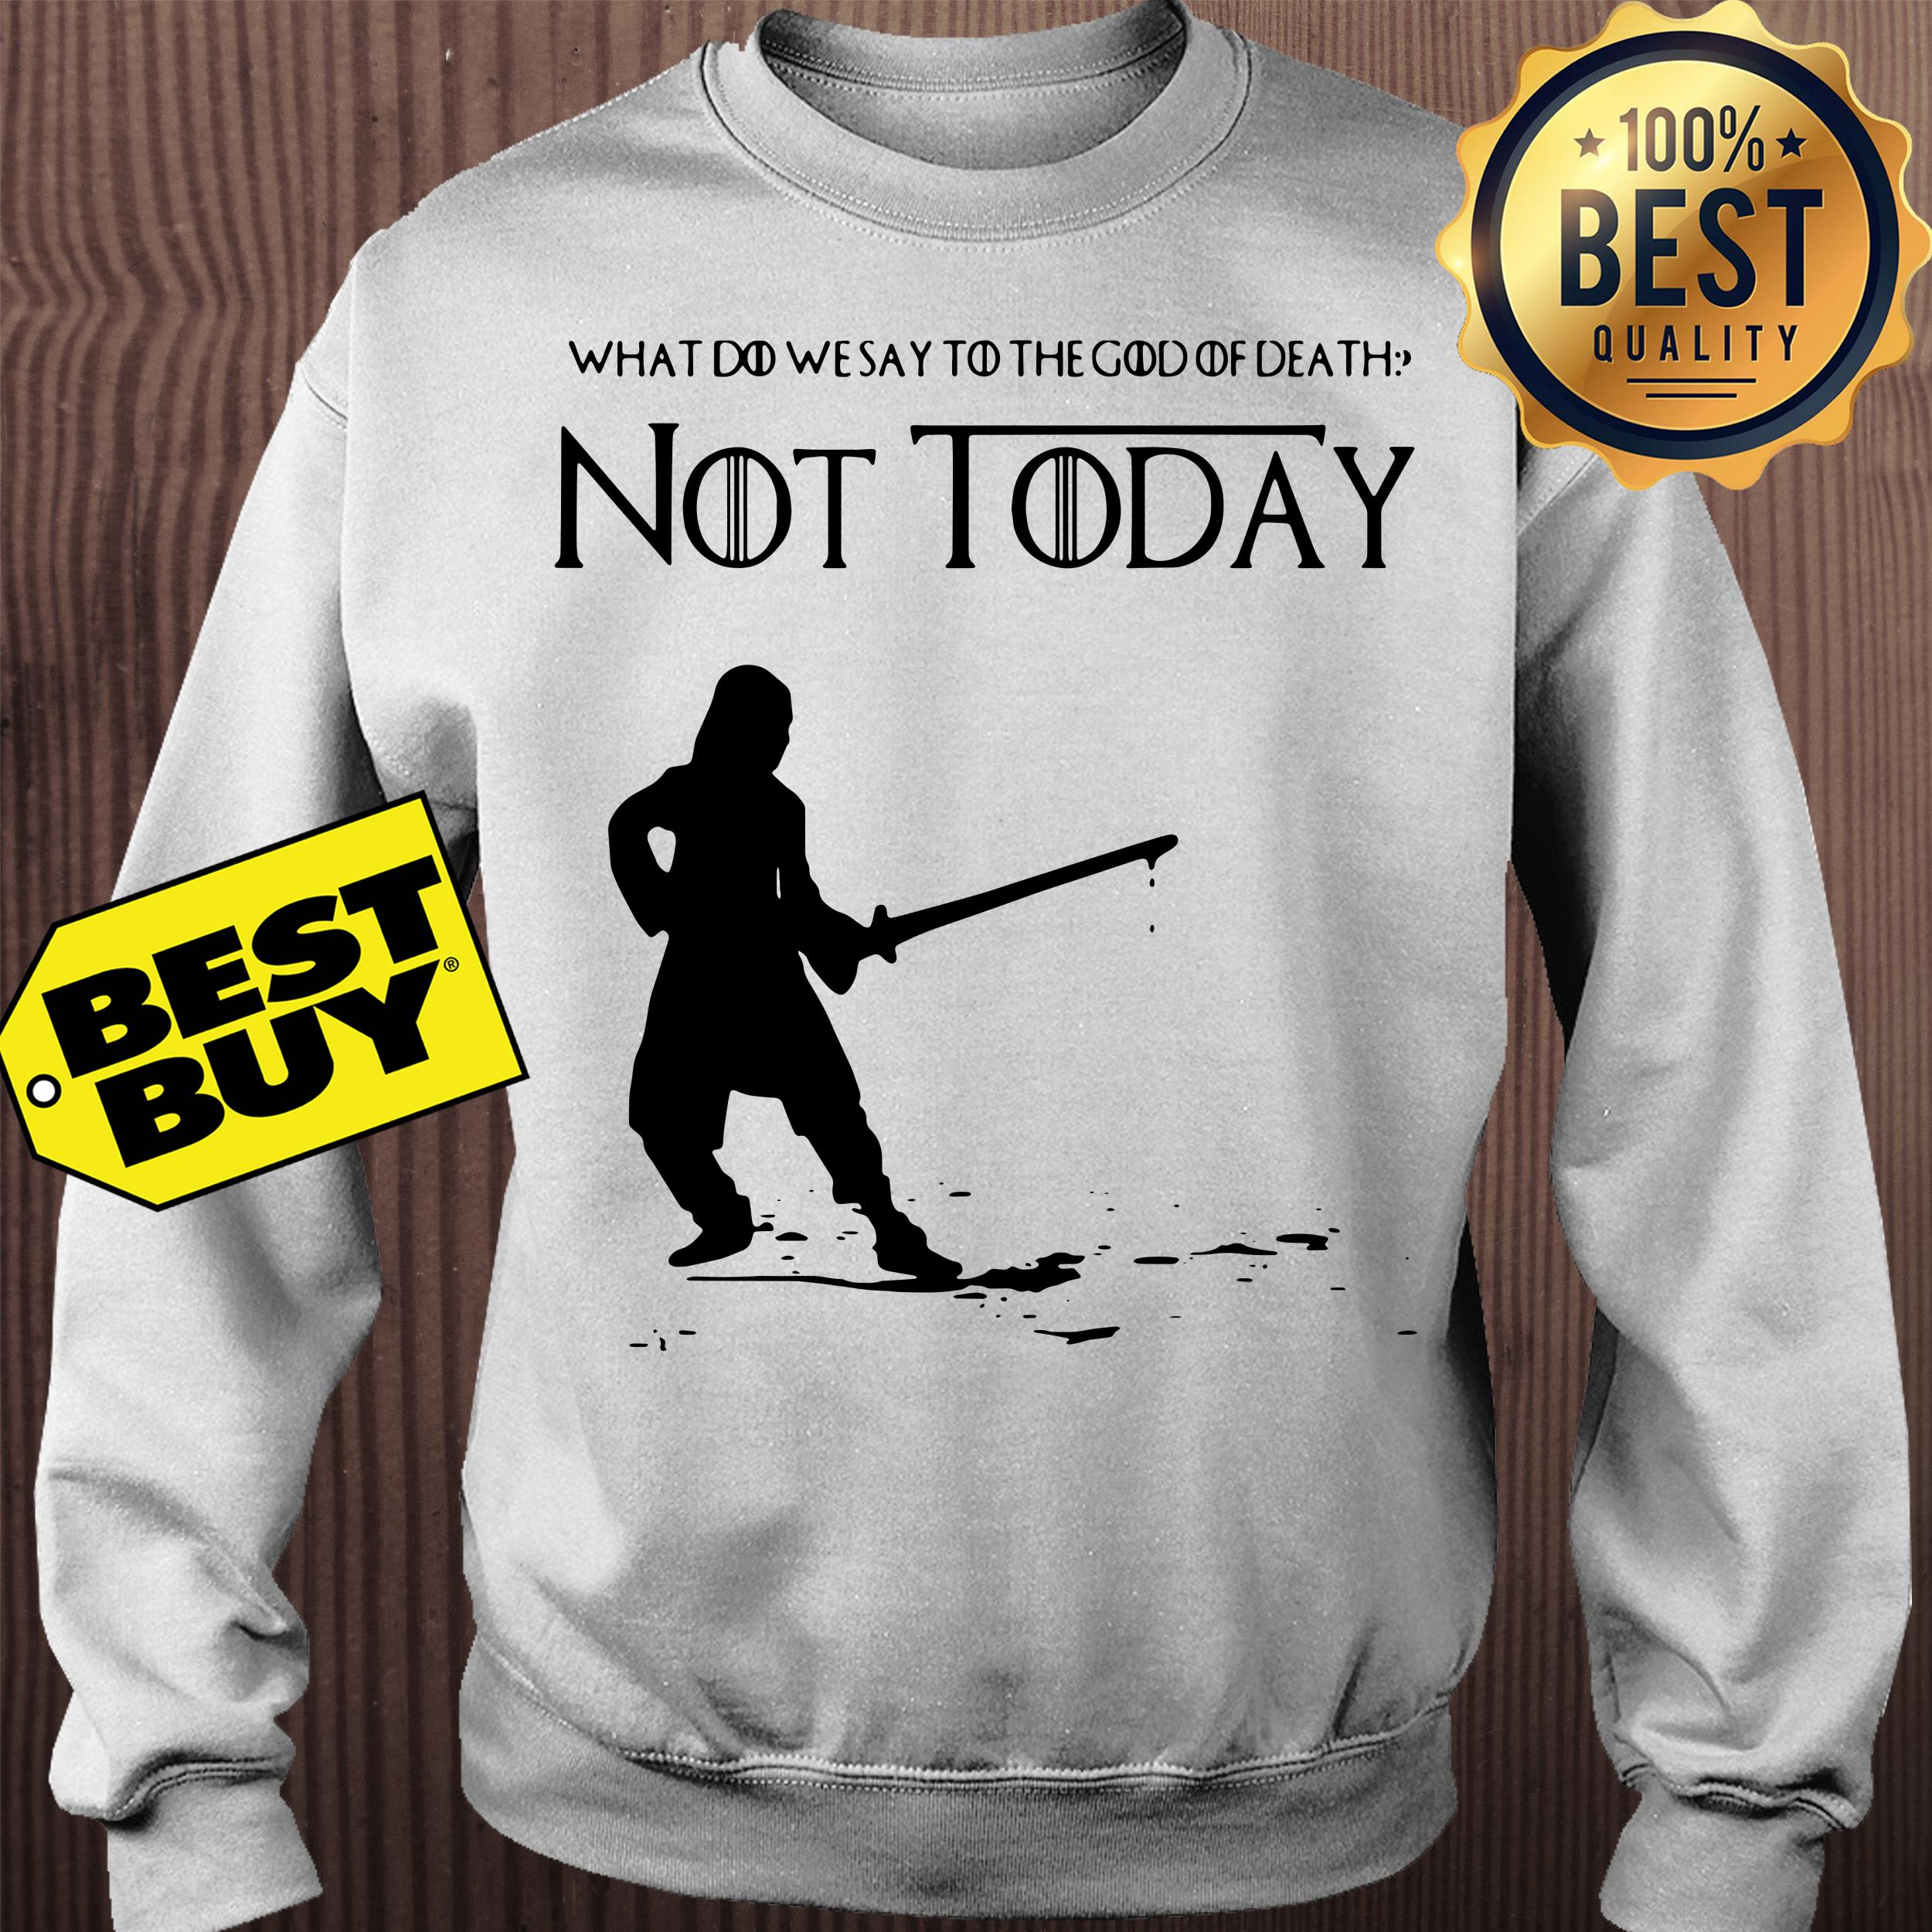 Not Today Shirt What Do We Say To The God Of Death Sweatshirt